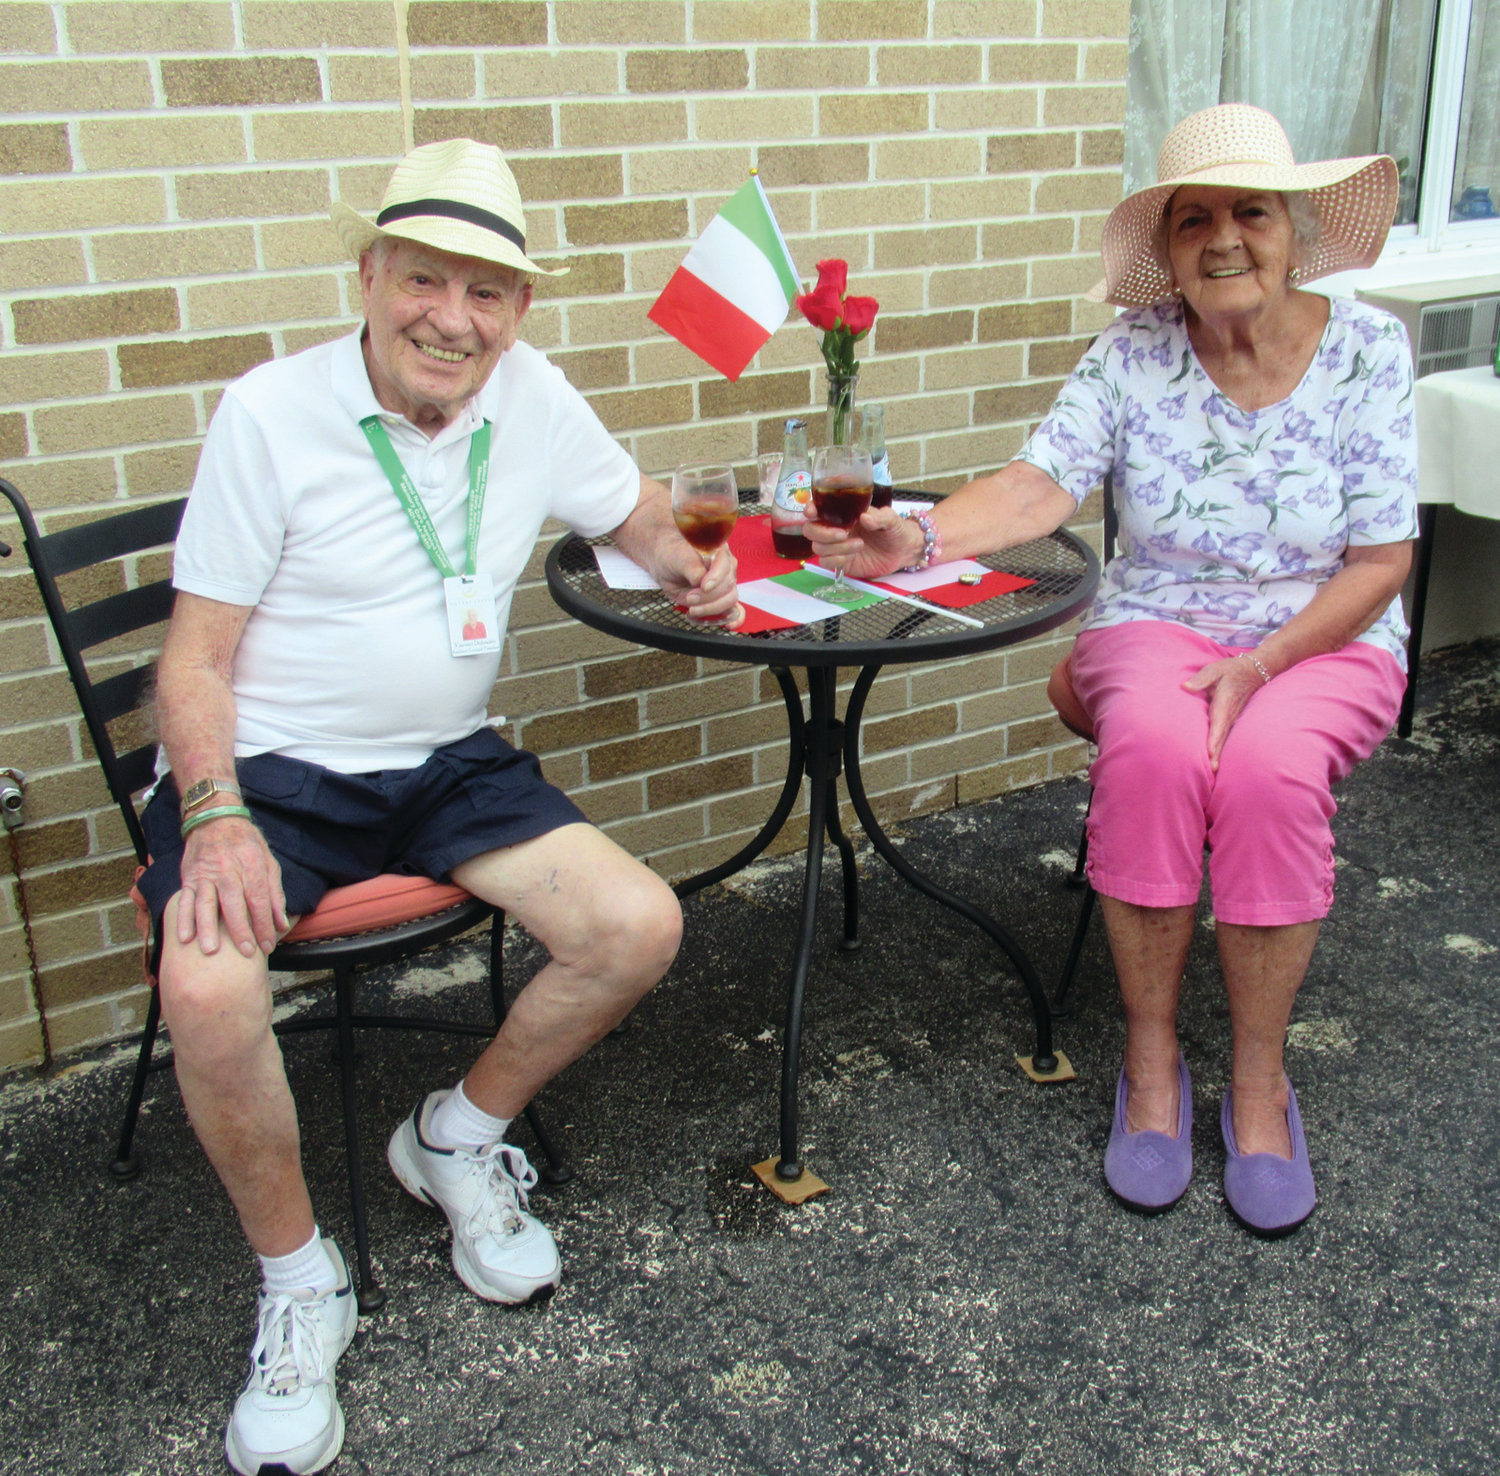 SALUTE! Briarcliffe Manor residents Vinny DiDonato and Doris Boucher offer a toast during Tuesday's Taste of Italy.